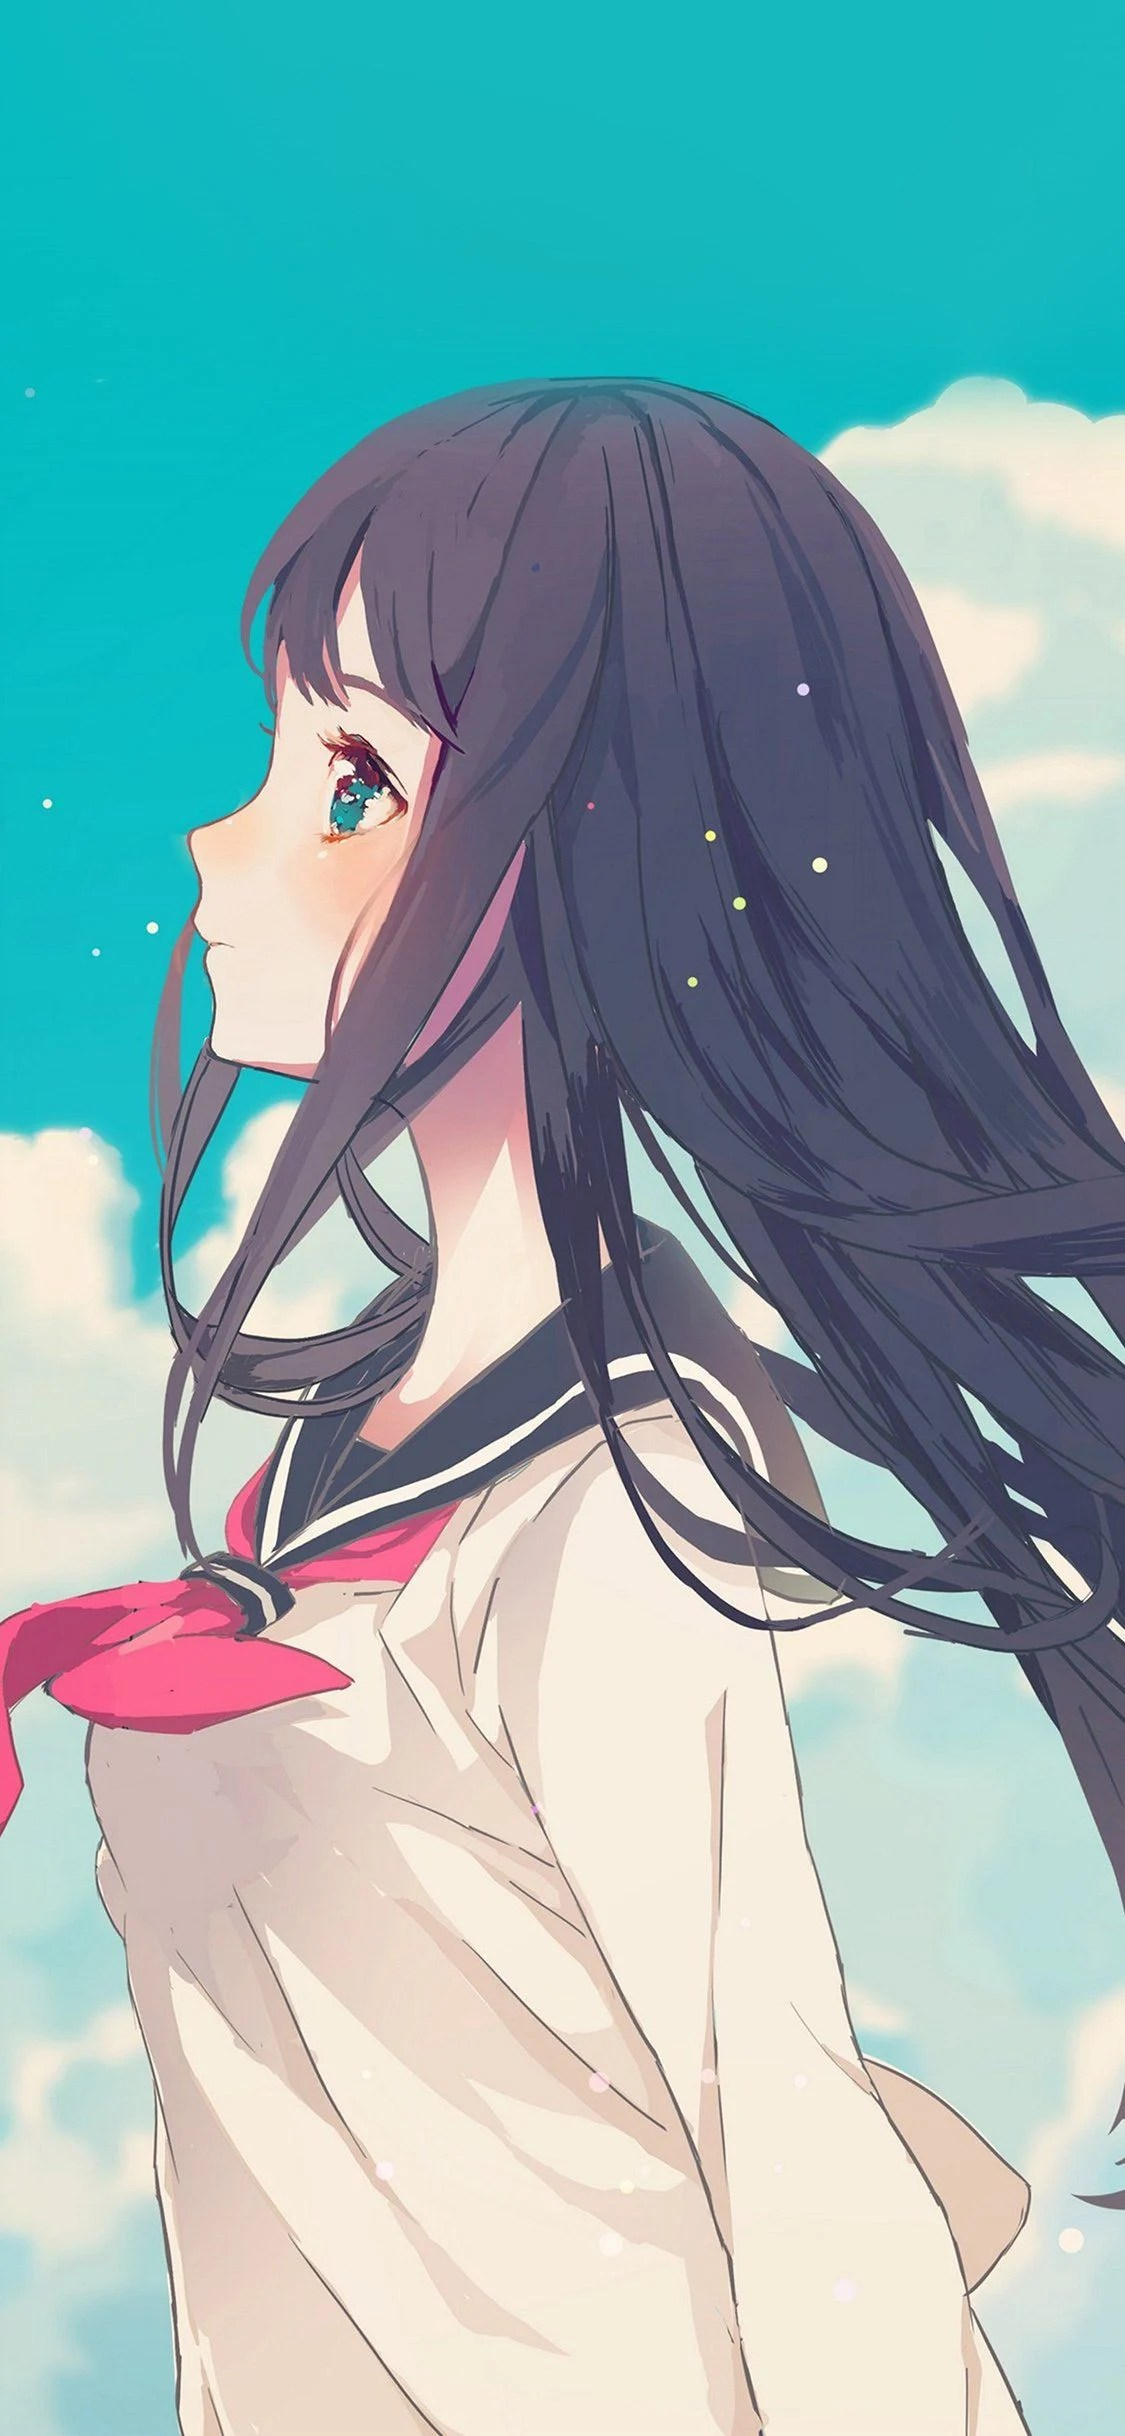 Cute Anime Girl Wallpaper Iphone : anime, wallpaper, iphone, Beautiful, Anime, IPhone, Wallpapers, Backgrounds, WallpaperAccess